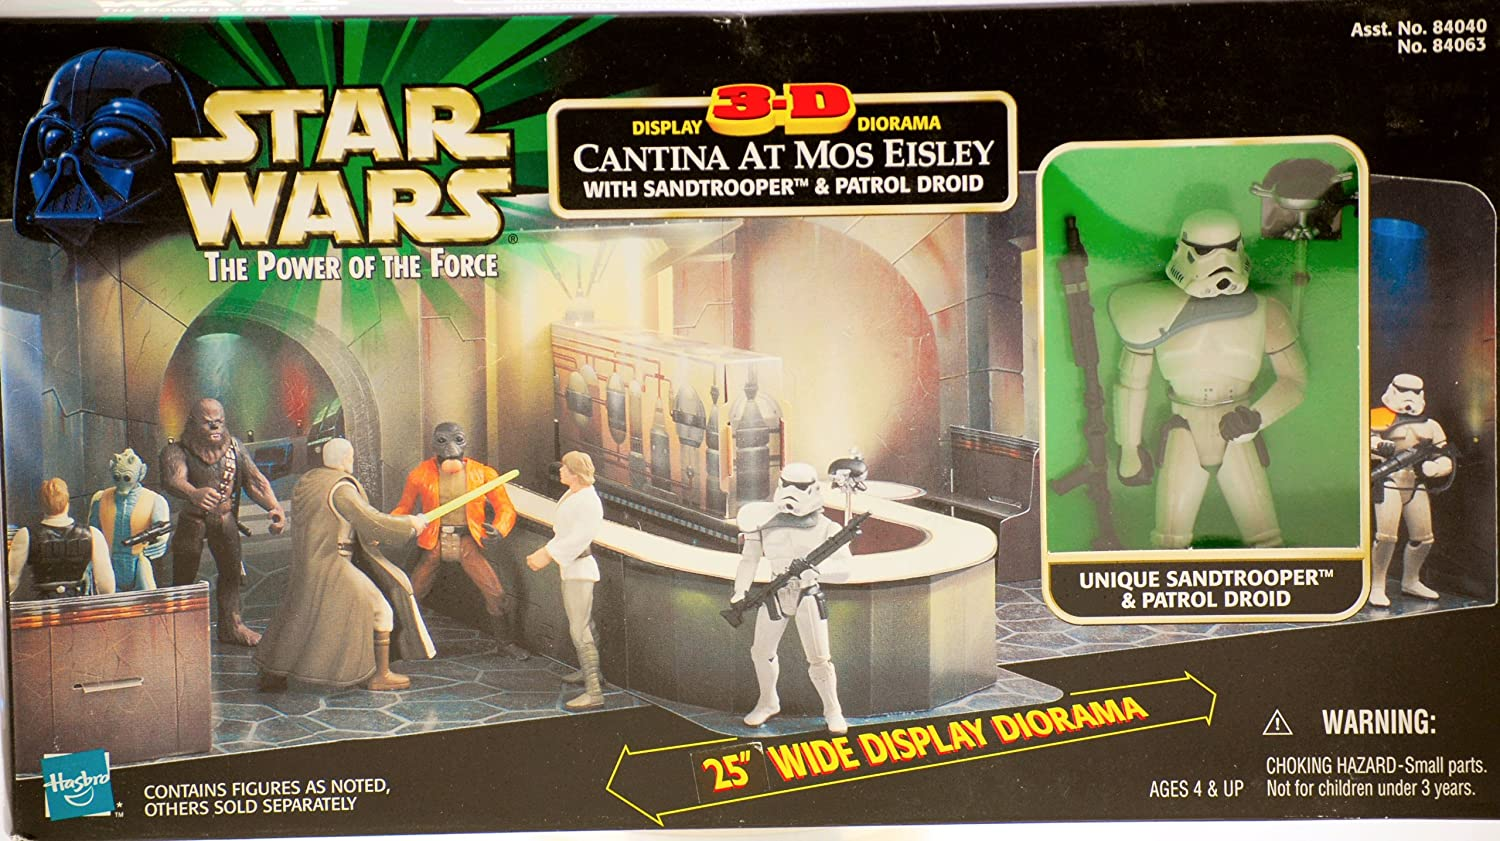 Hasbro Star Wars  Power of the Force   Cantina 3D Display Diorama with Sandtrooper & Patrol Droid